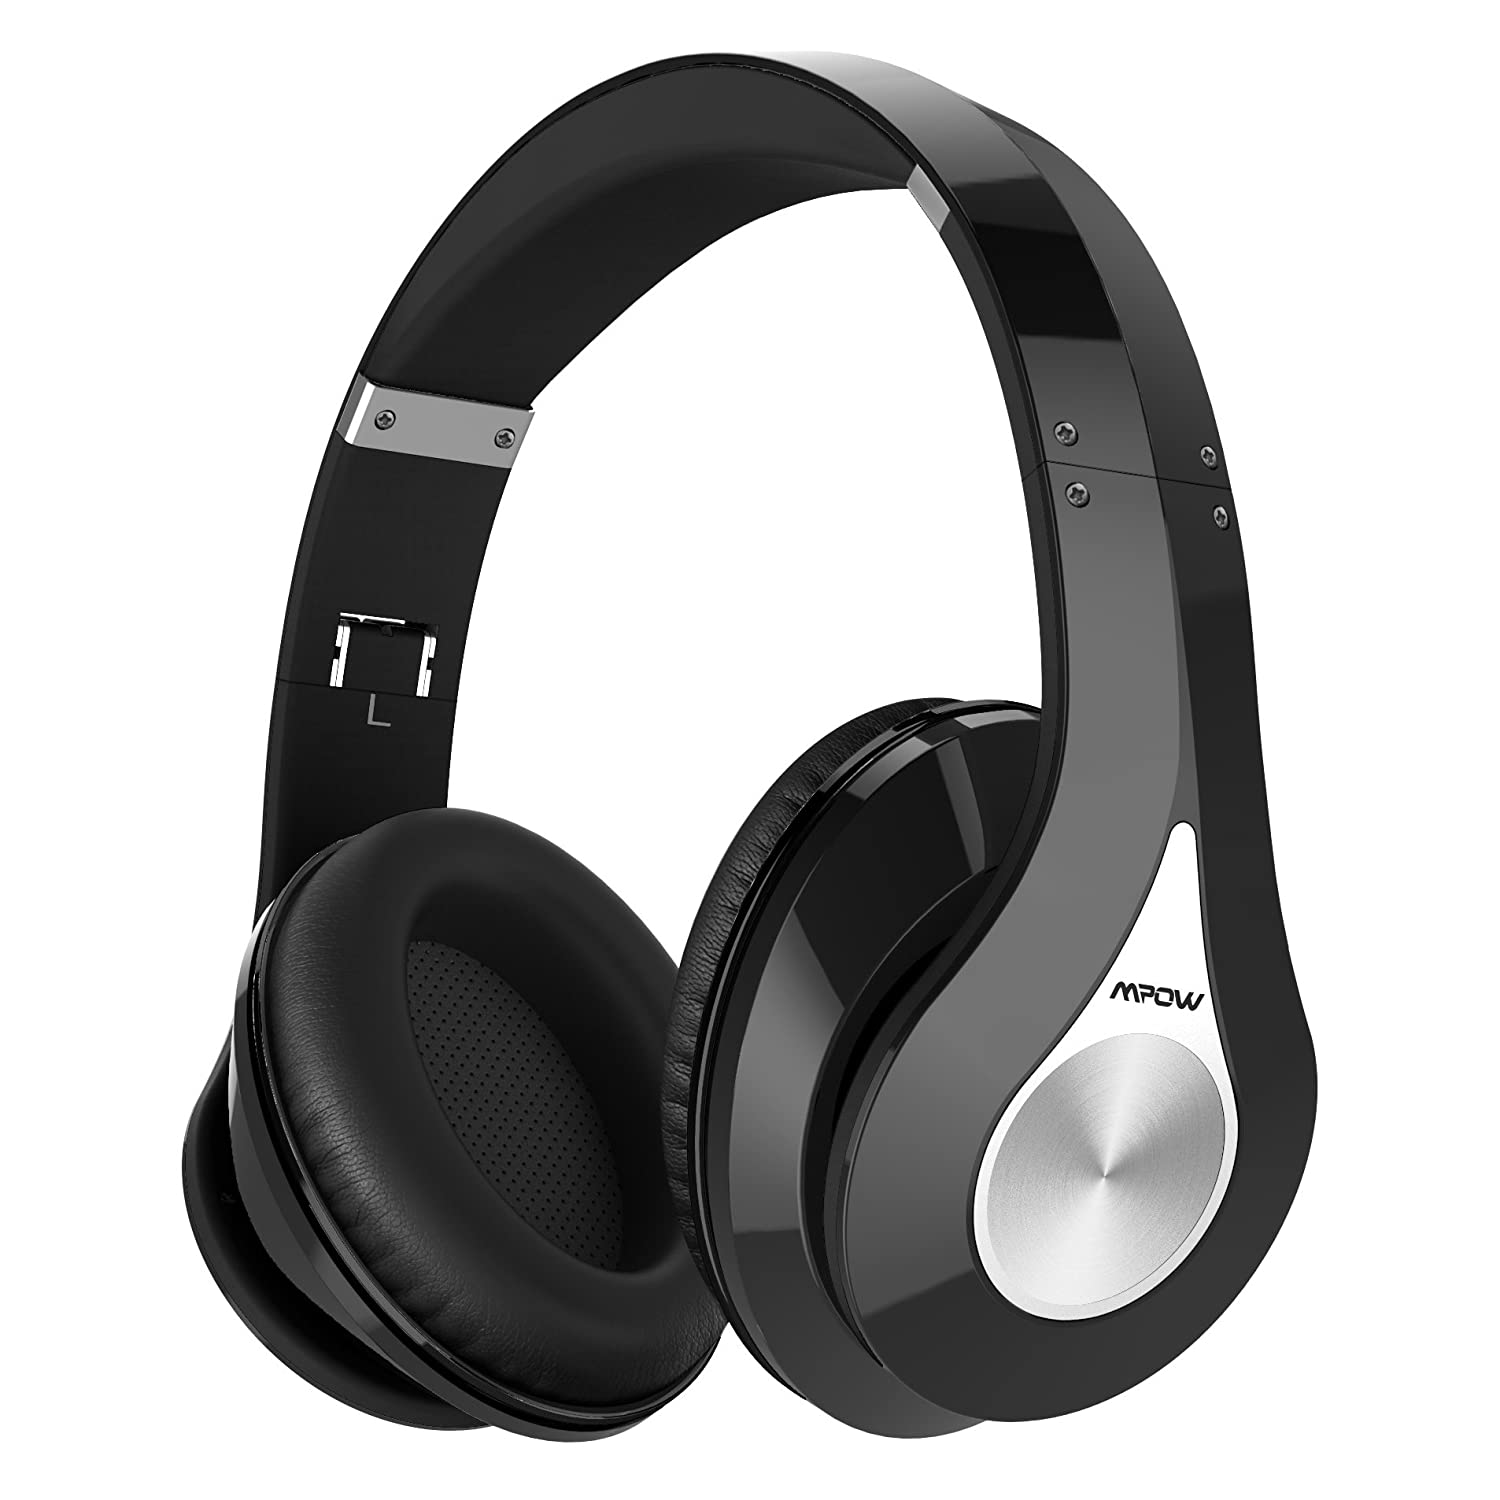 Mpow 059 Bluetooth Headphones Over Ear  Hi-Fi Stereo Wireless Headset  Foldable  Soft Memory-Protein Earmuffs  w Built-in Mic and Wired Mode for PC Cell Phones TV